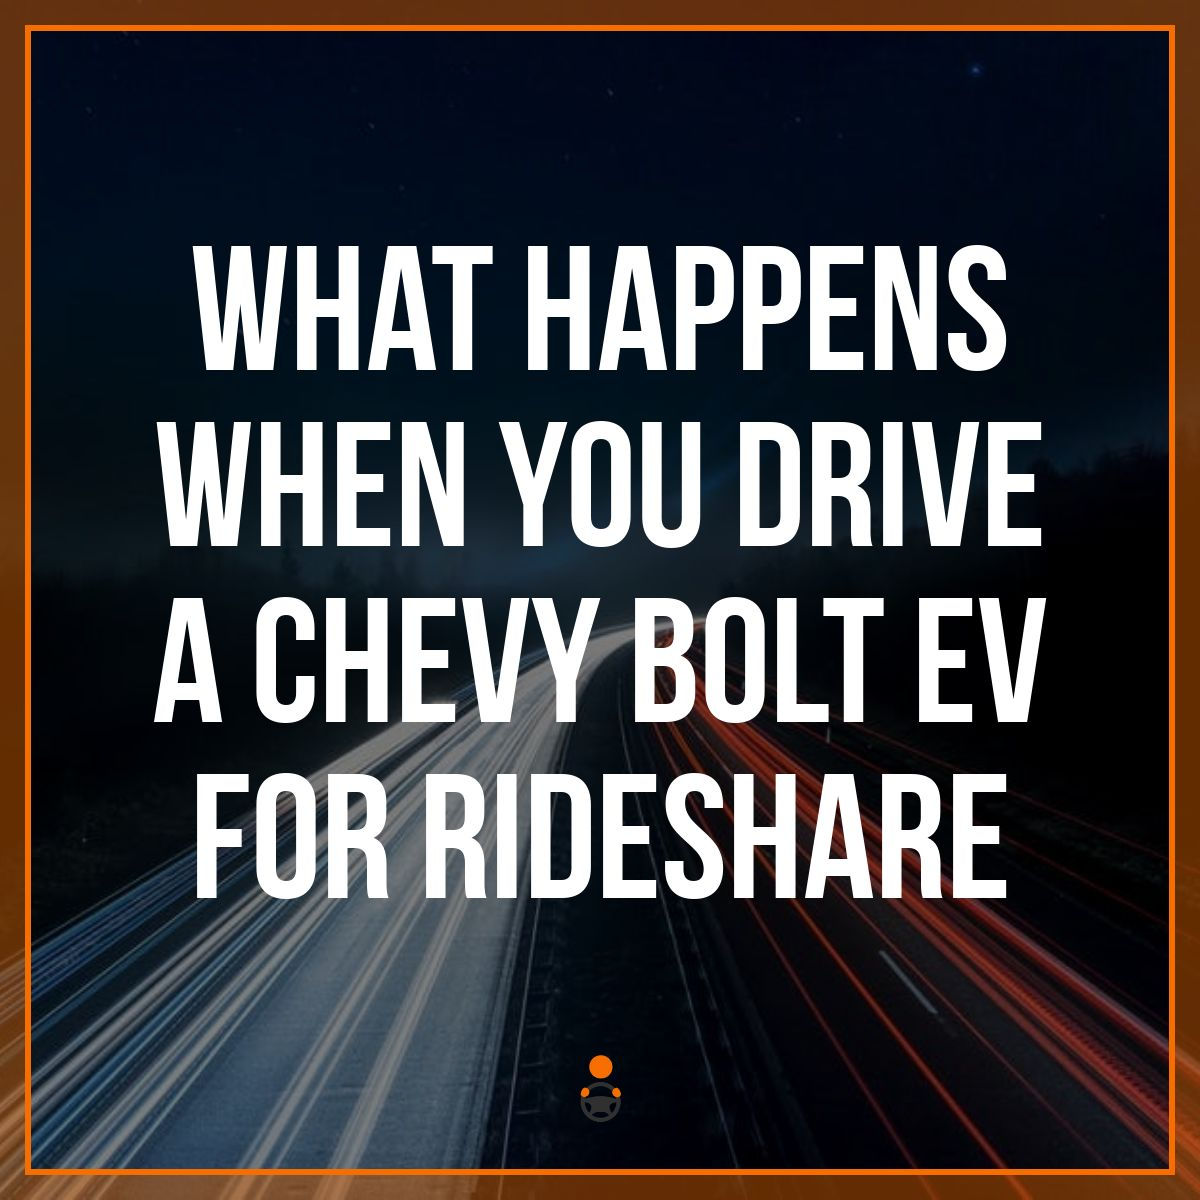 What Happens When You Drive a Chevy Bolt EV for Rideshare